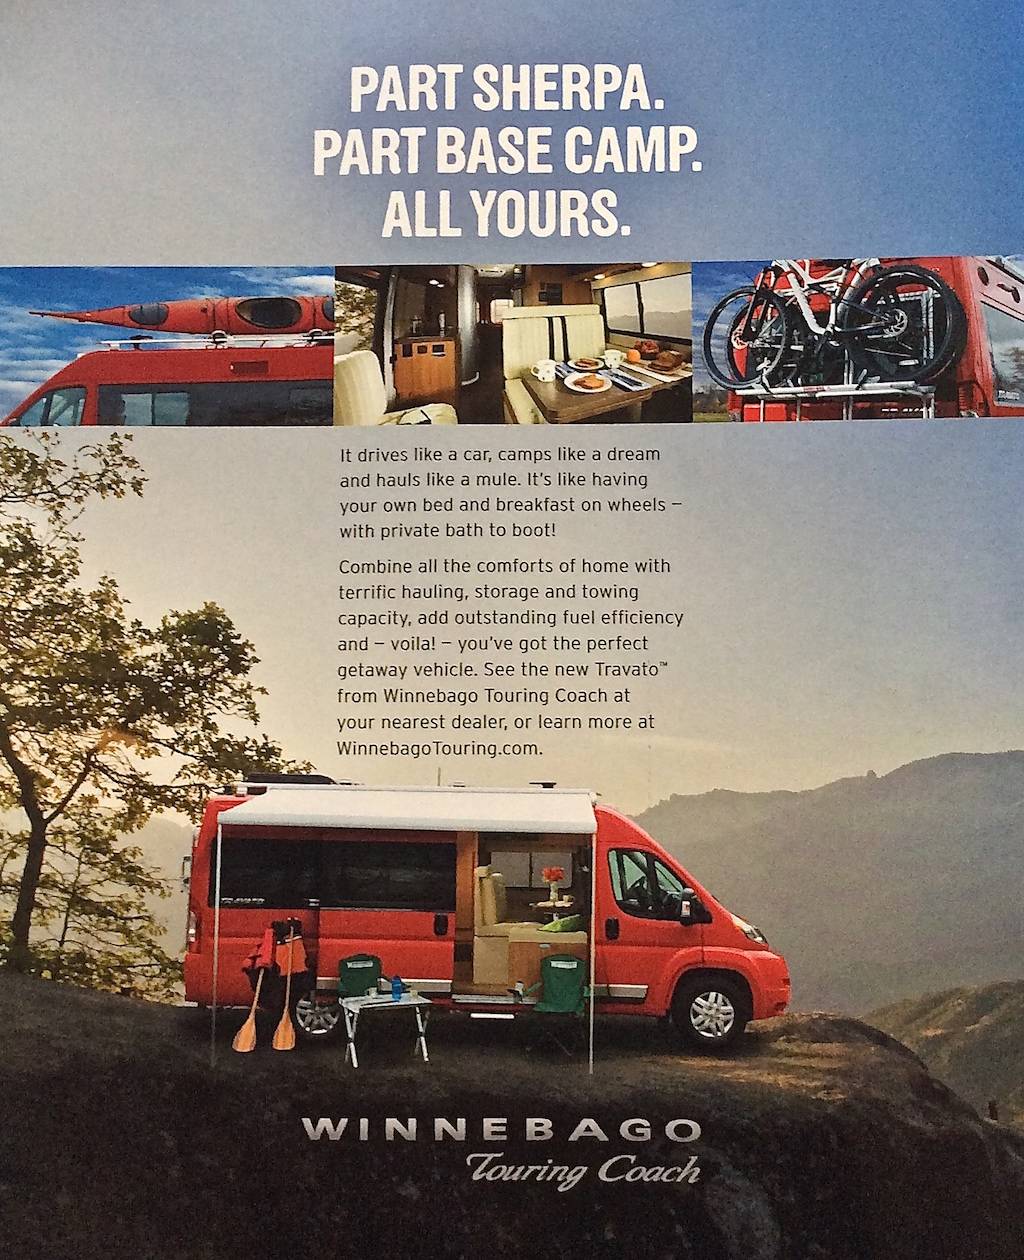 Brochure for Winnebago Touring Coach.